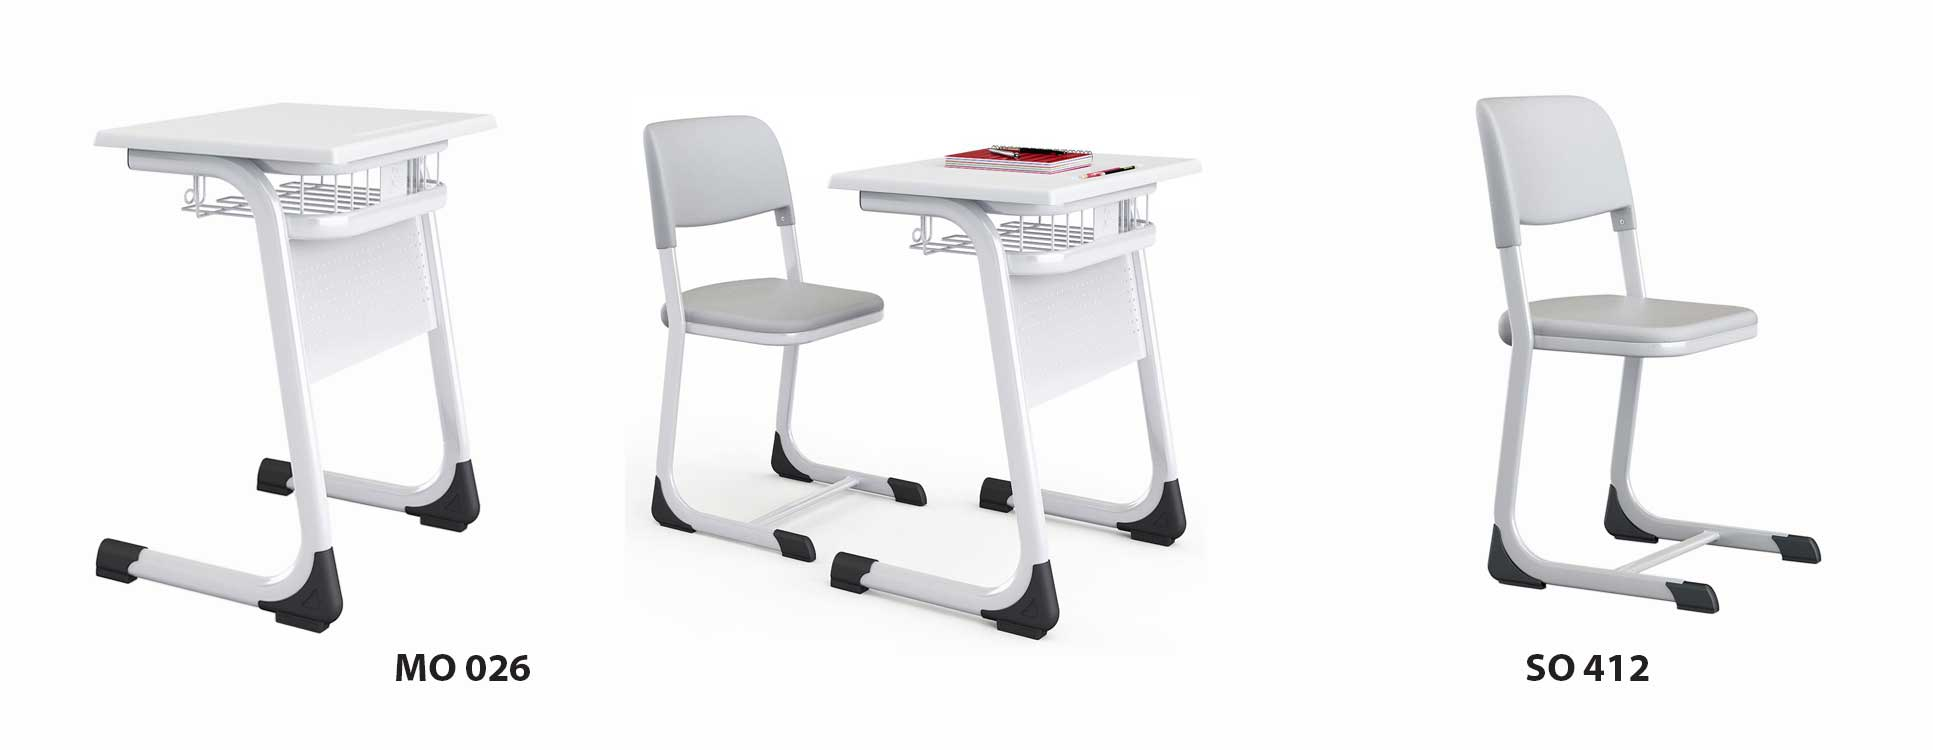 Chairry set mobilier scolar individual